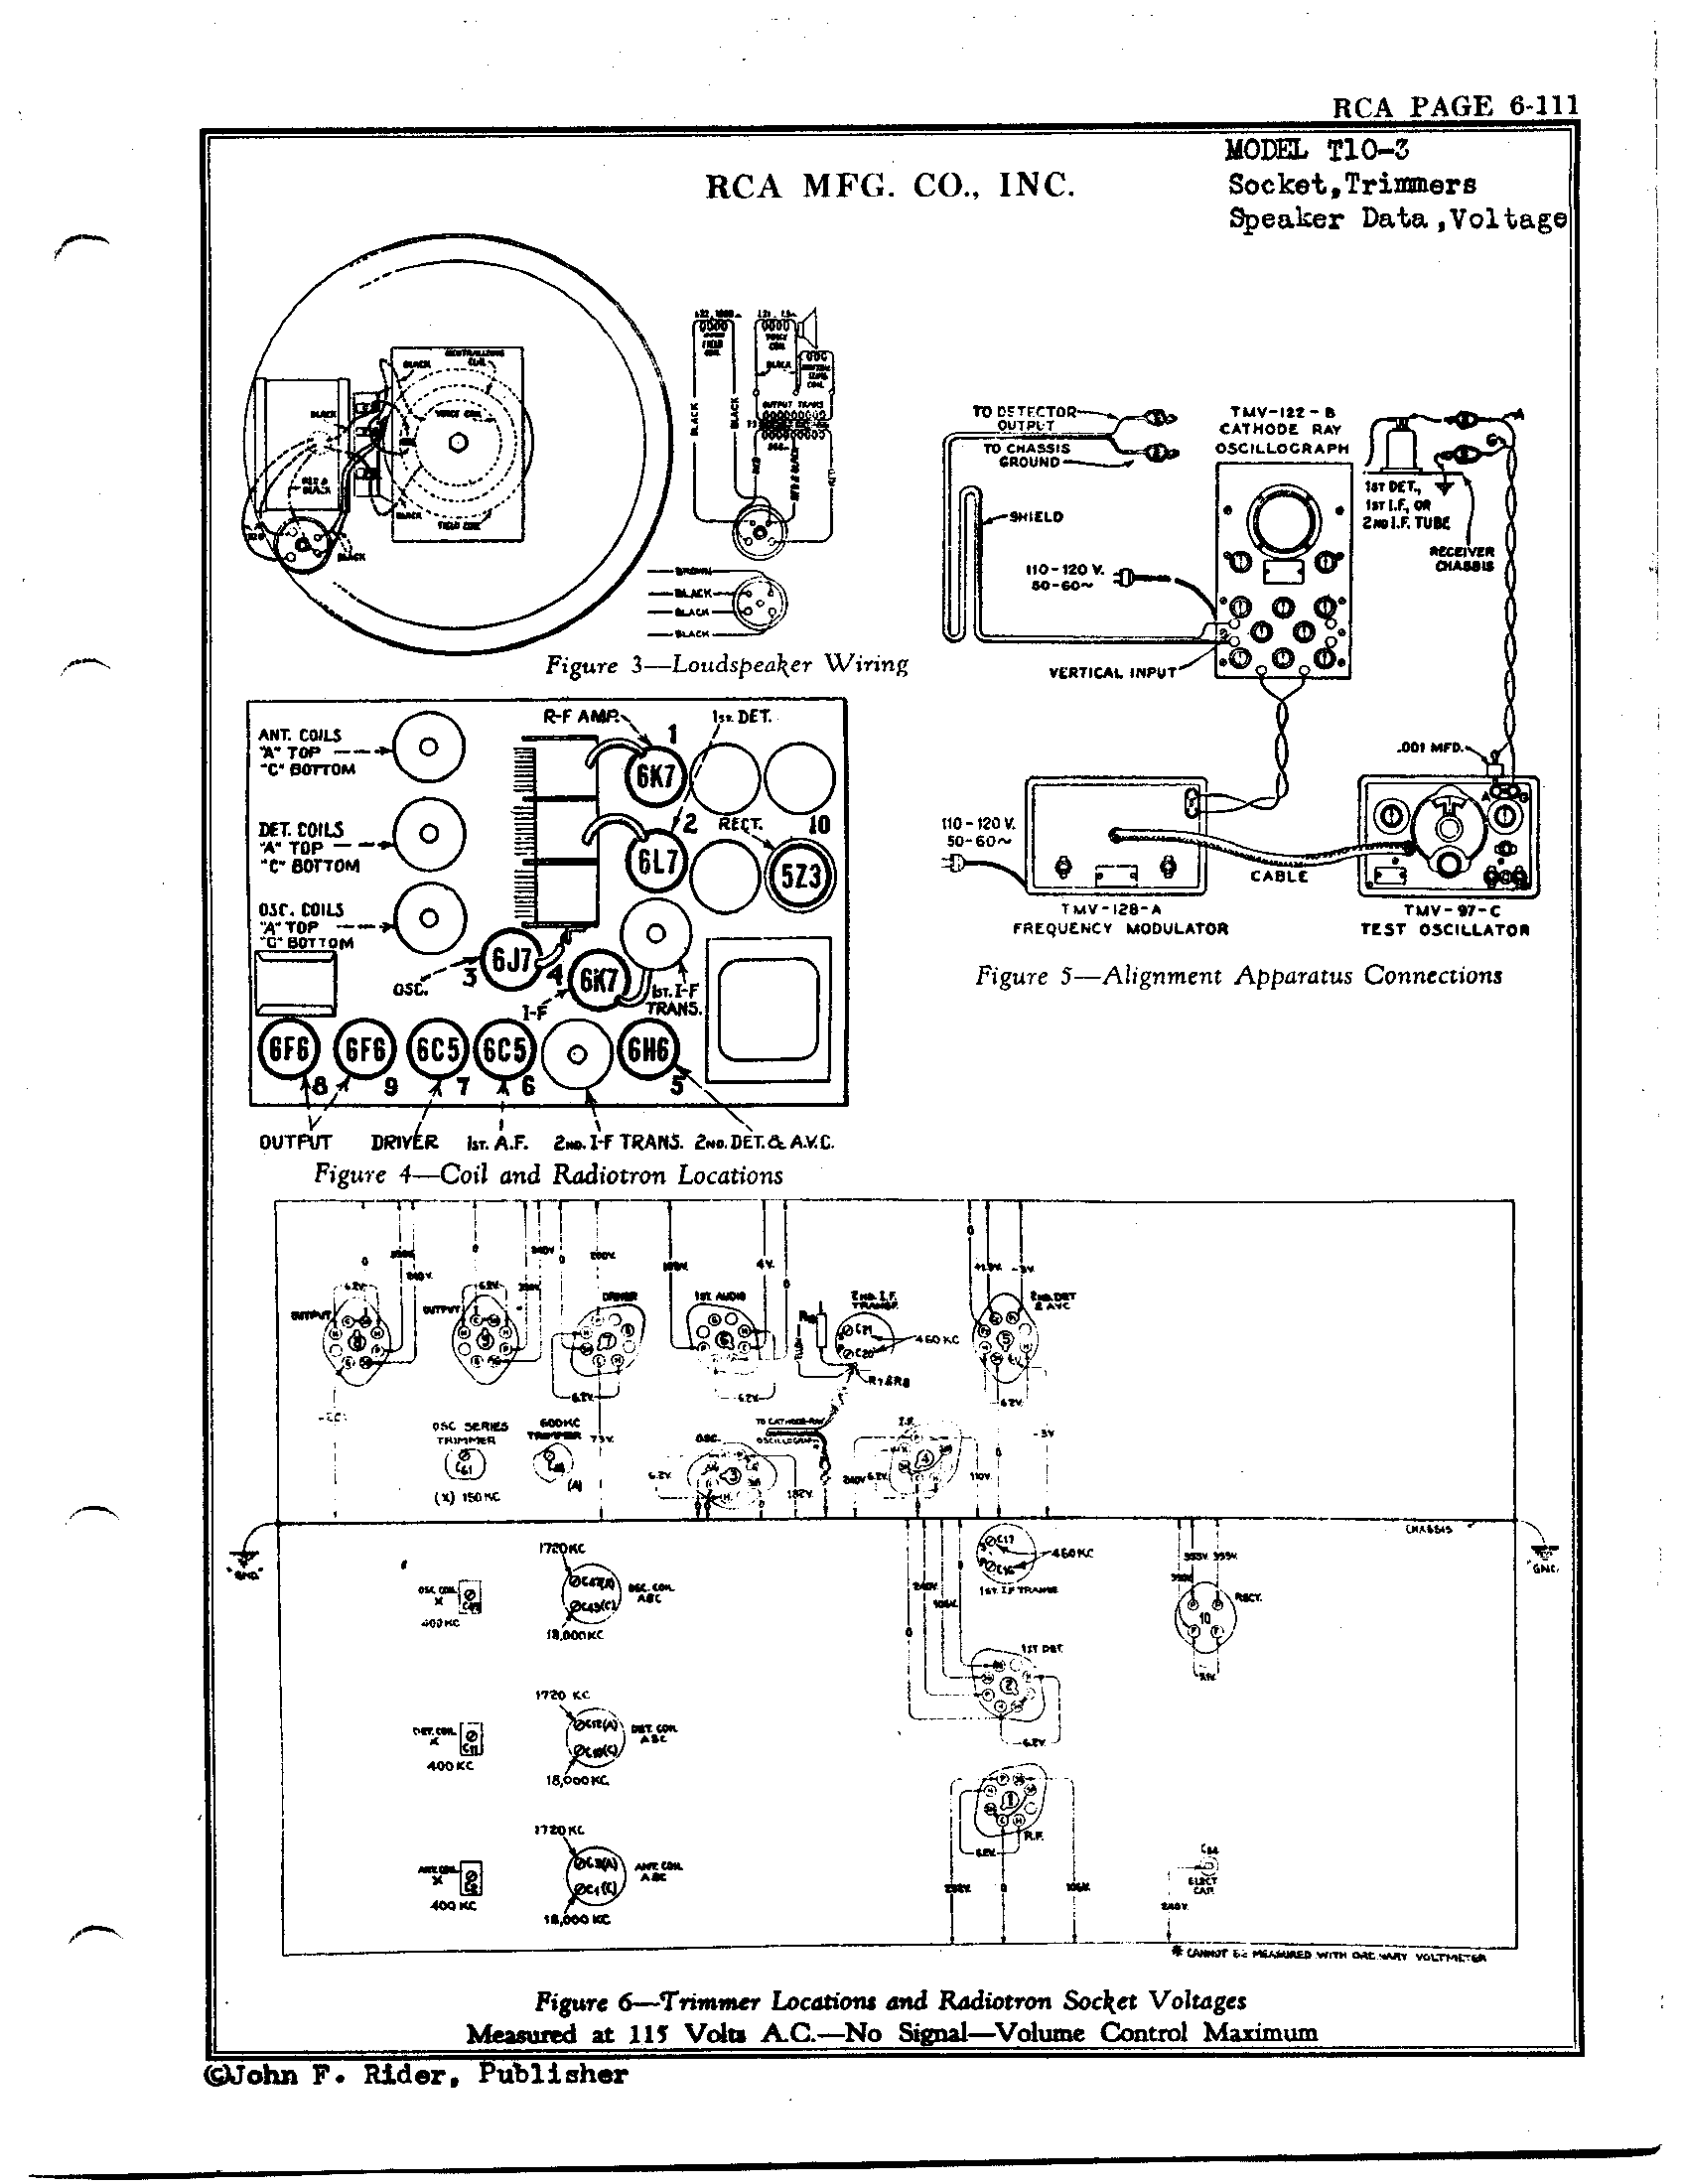 Rca Victor Co Inc T10 3 Antique Electronic Supply Fig 6 Equivalent Circuit Of The Resistancecoupled Amplifier In Page 4 Figure